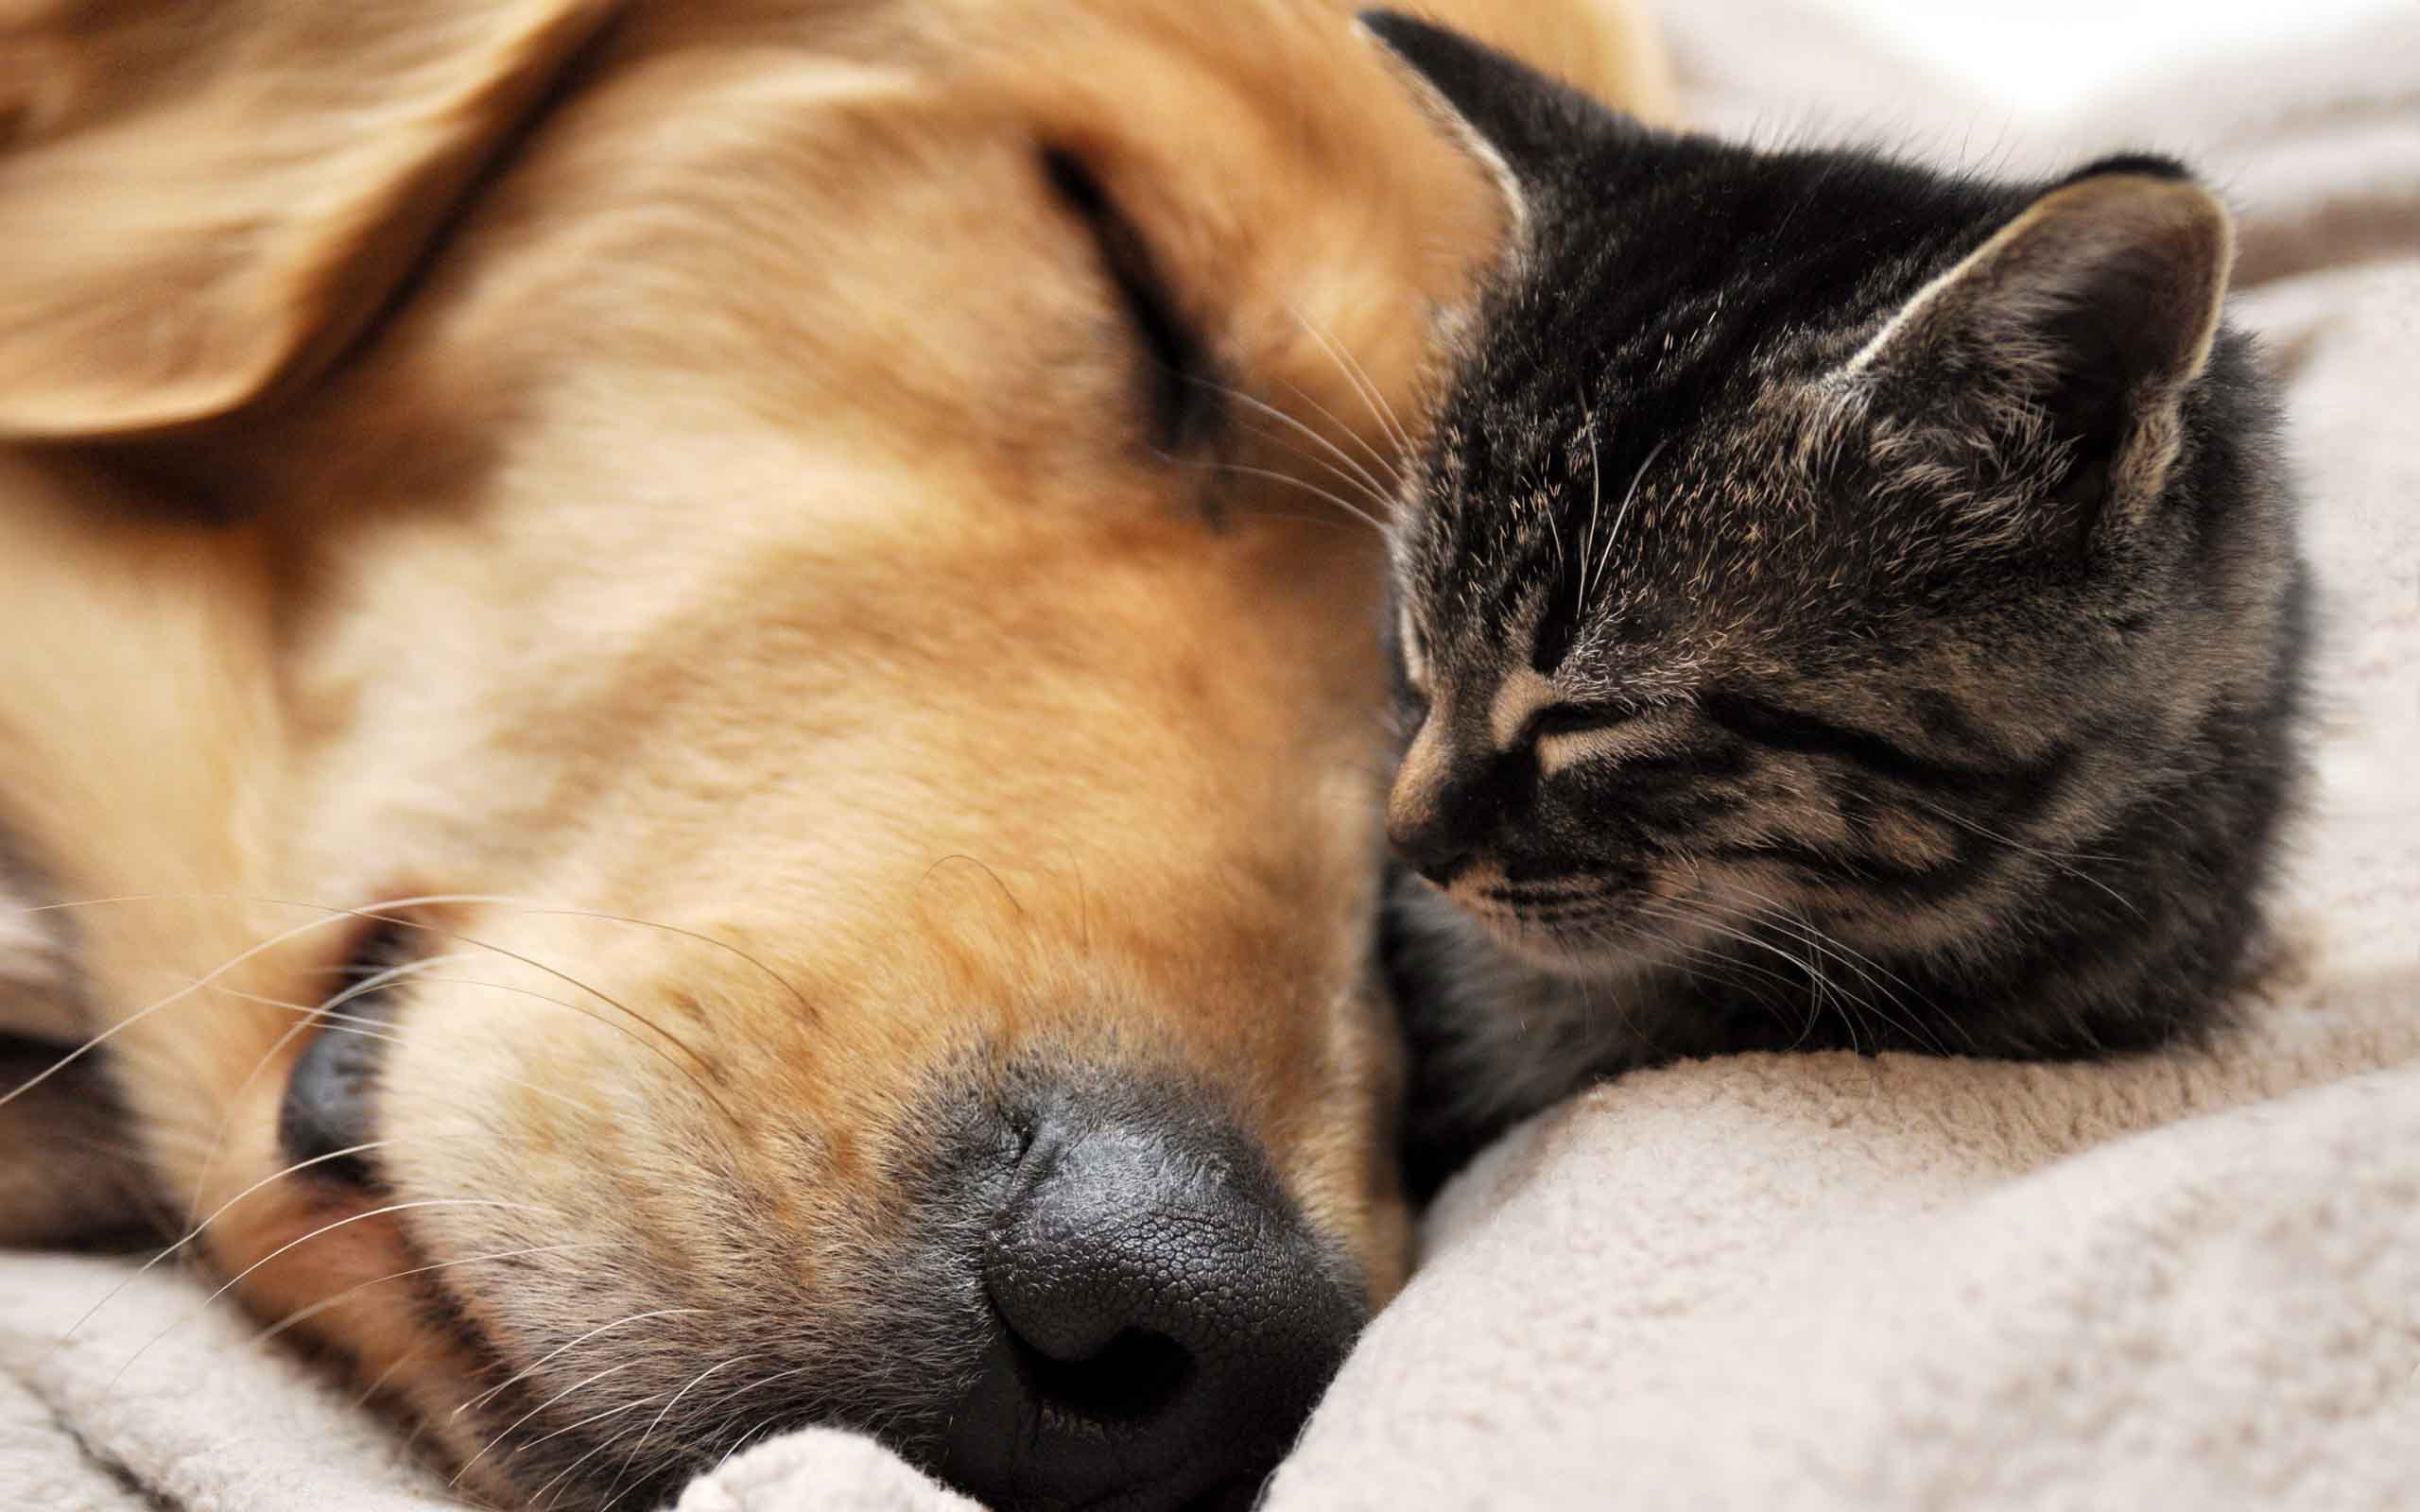 dog-and-cat-wallpaper-high-resolution-For-Desktop-Wallpaper